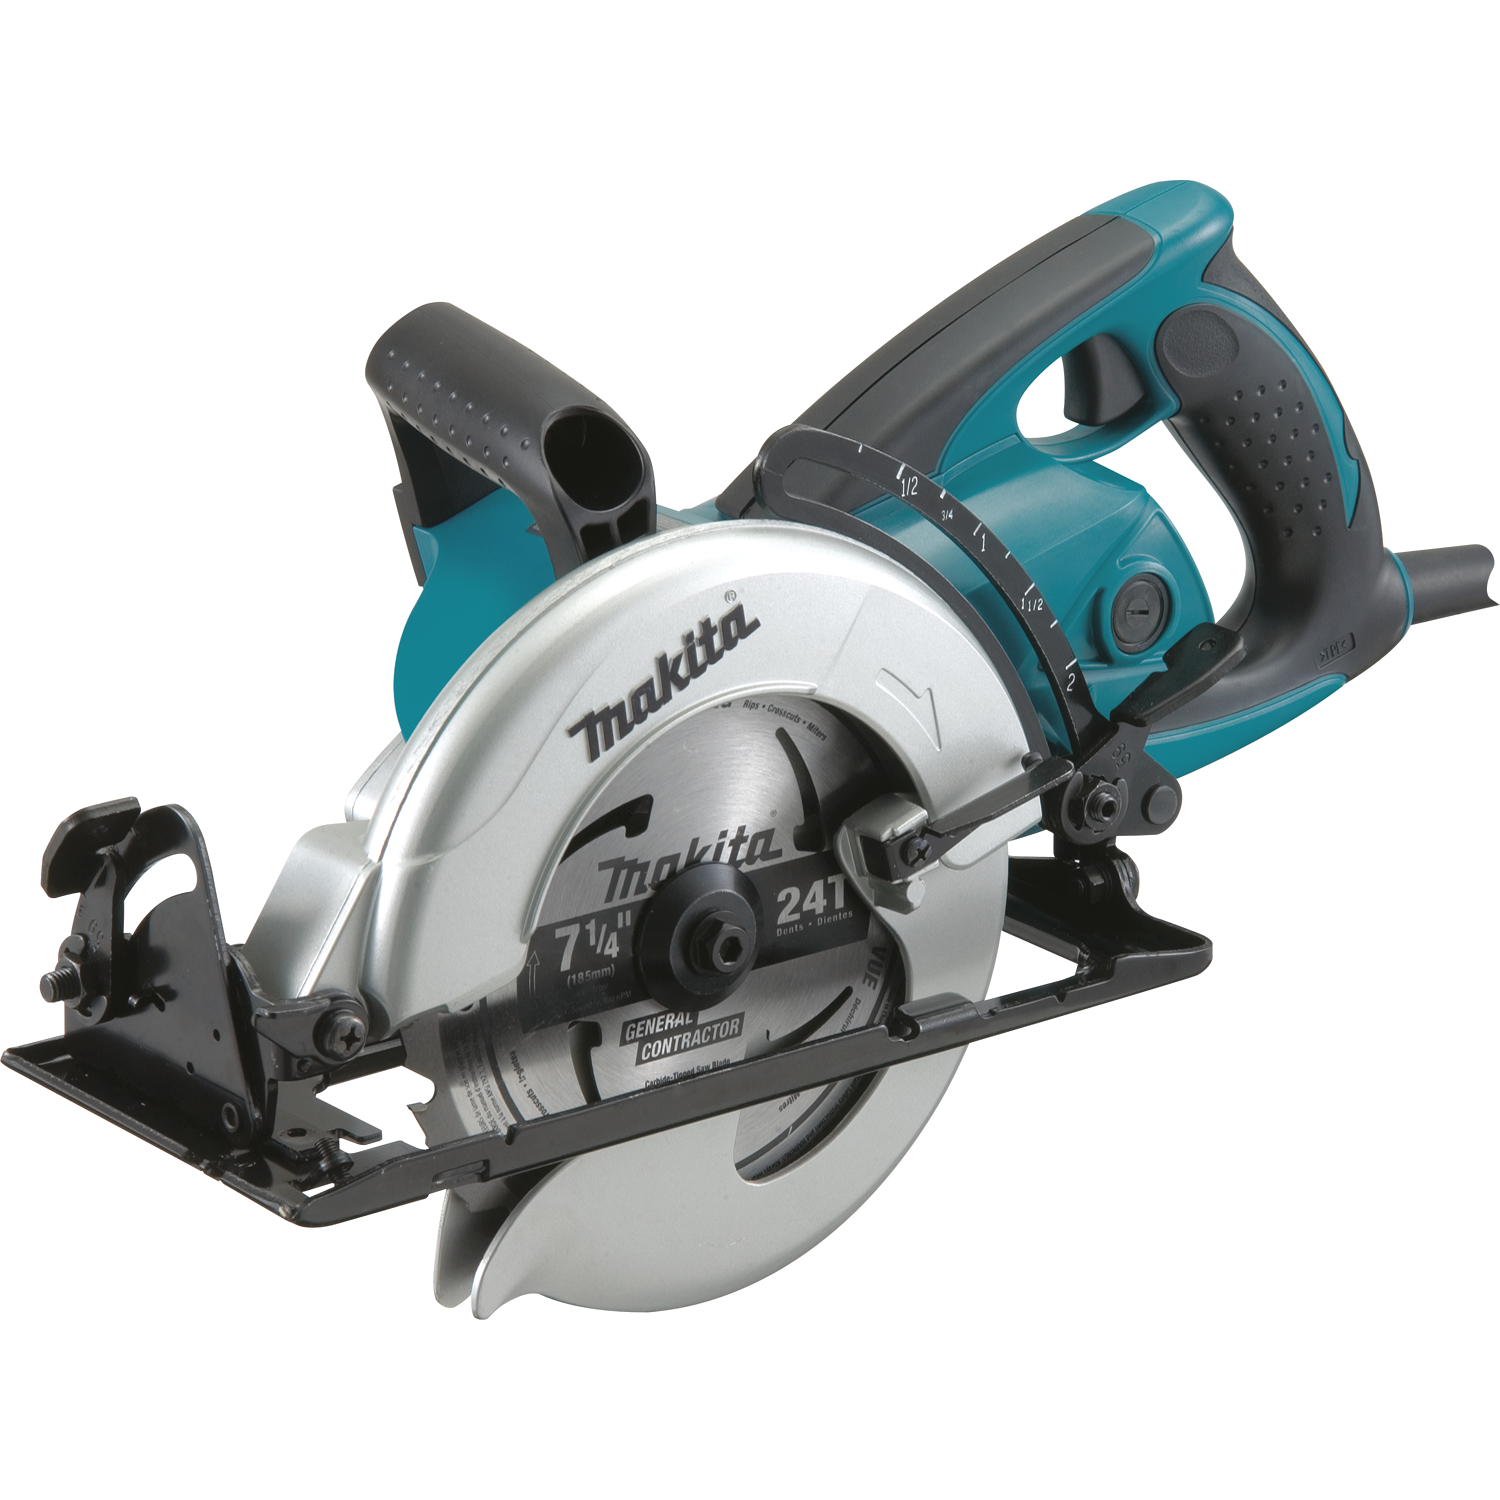 Makita usa product details 5477nb 5477nb greentooth Choice Image